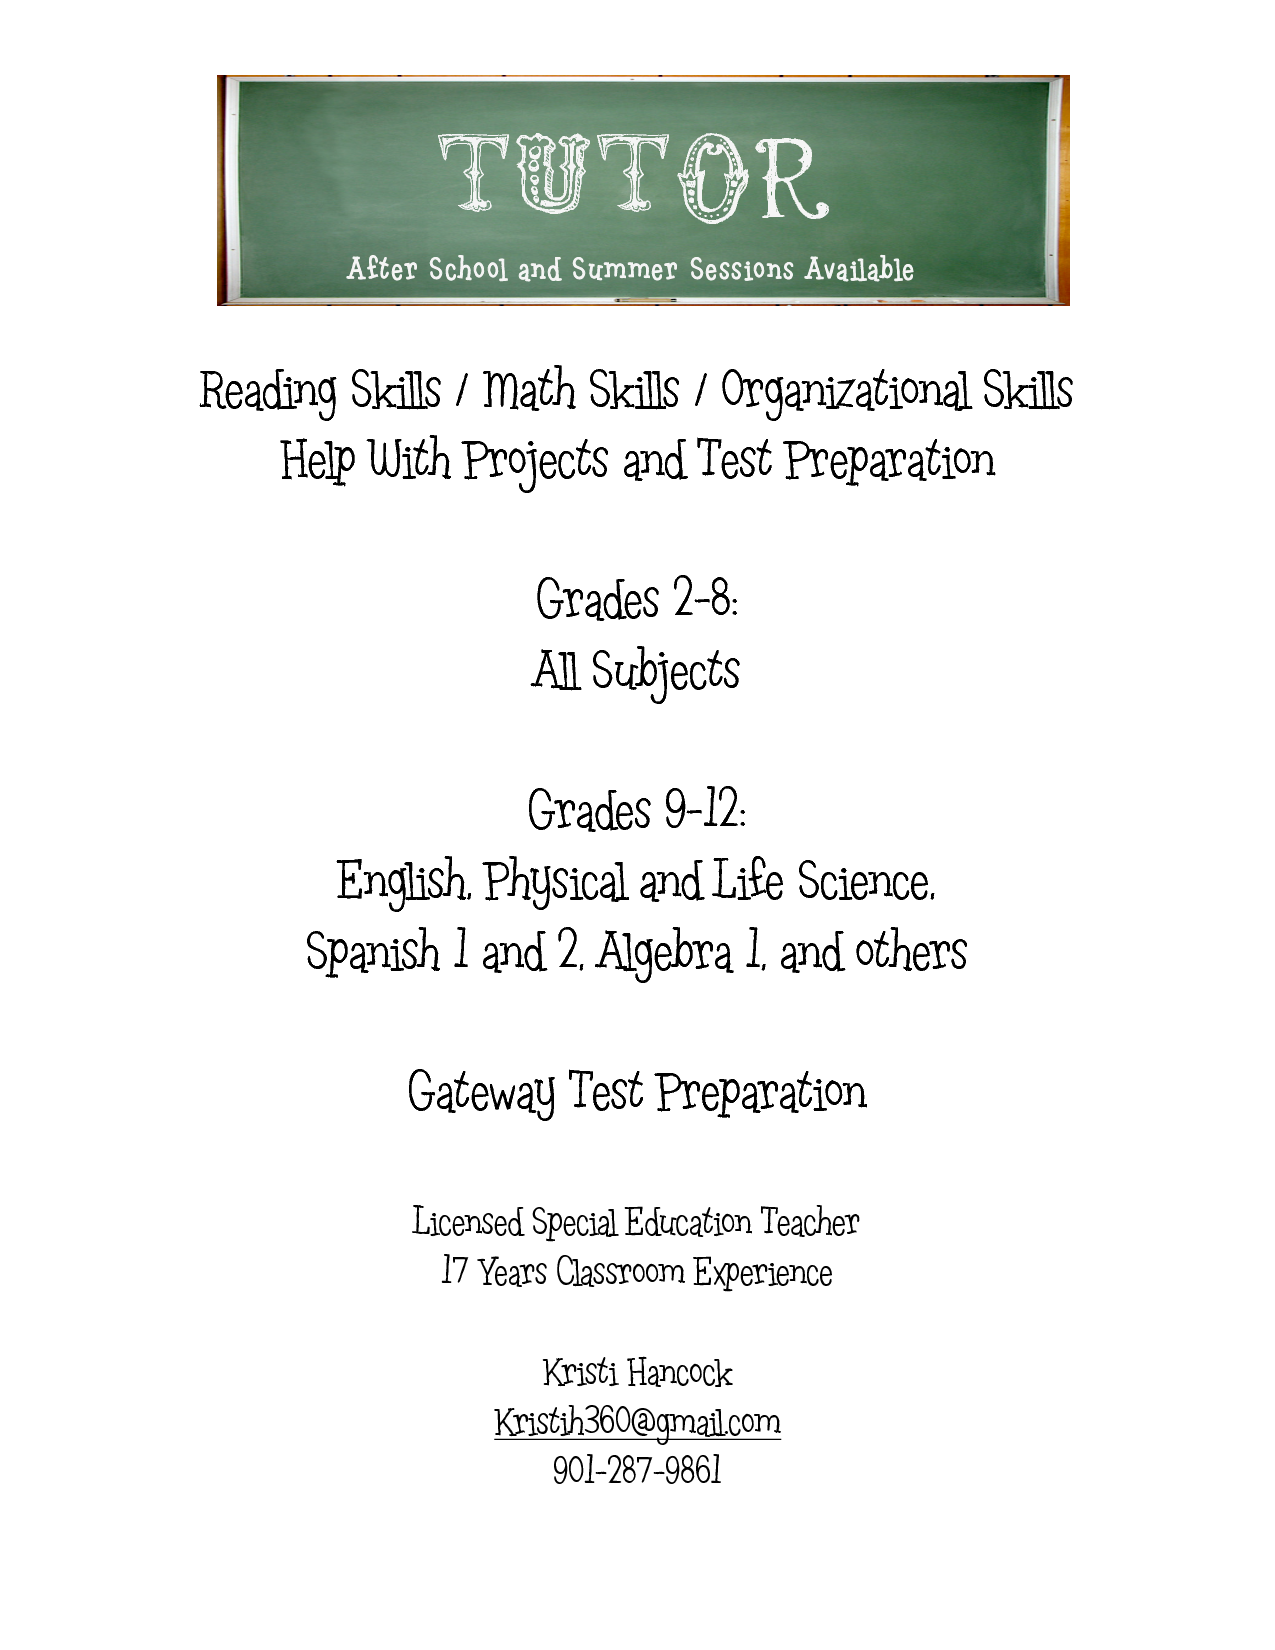 tutoring flyer examples - Google Search | tutoring | Pinterest ...